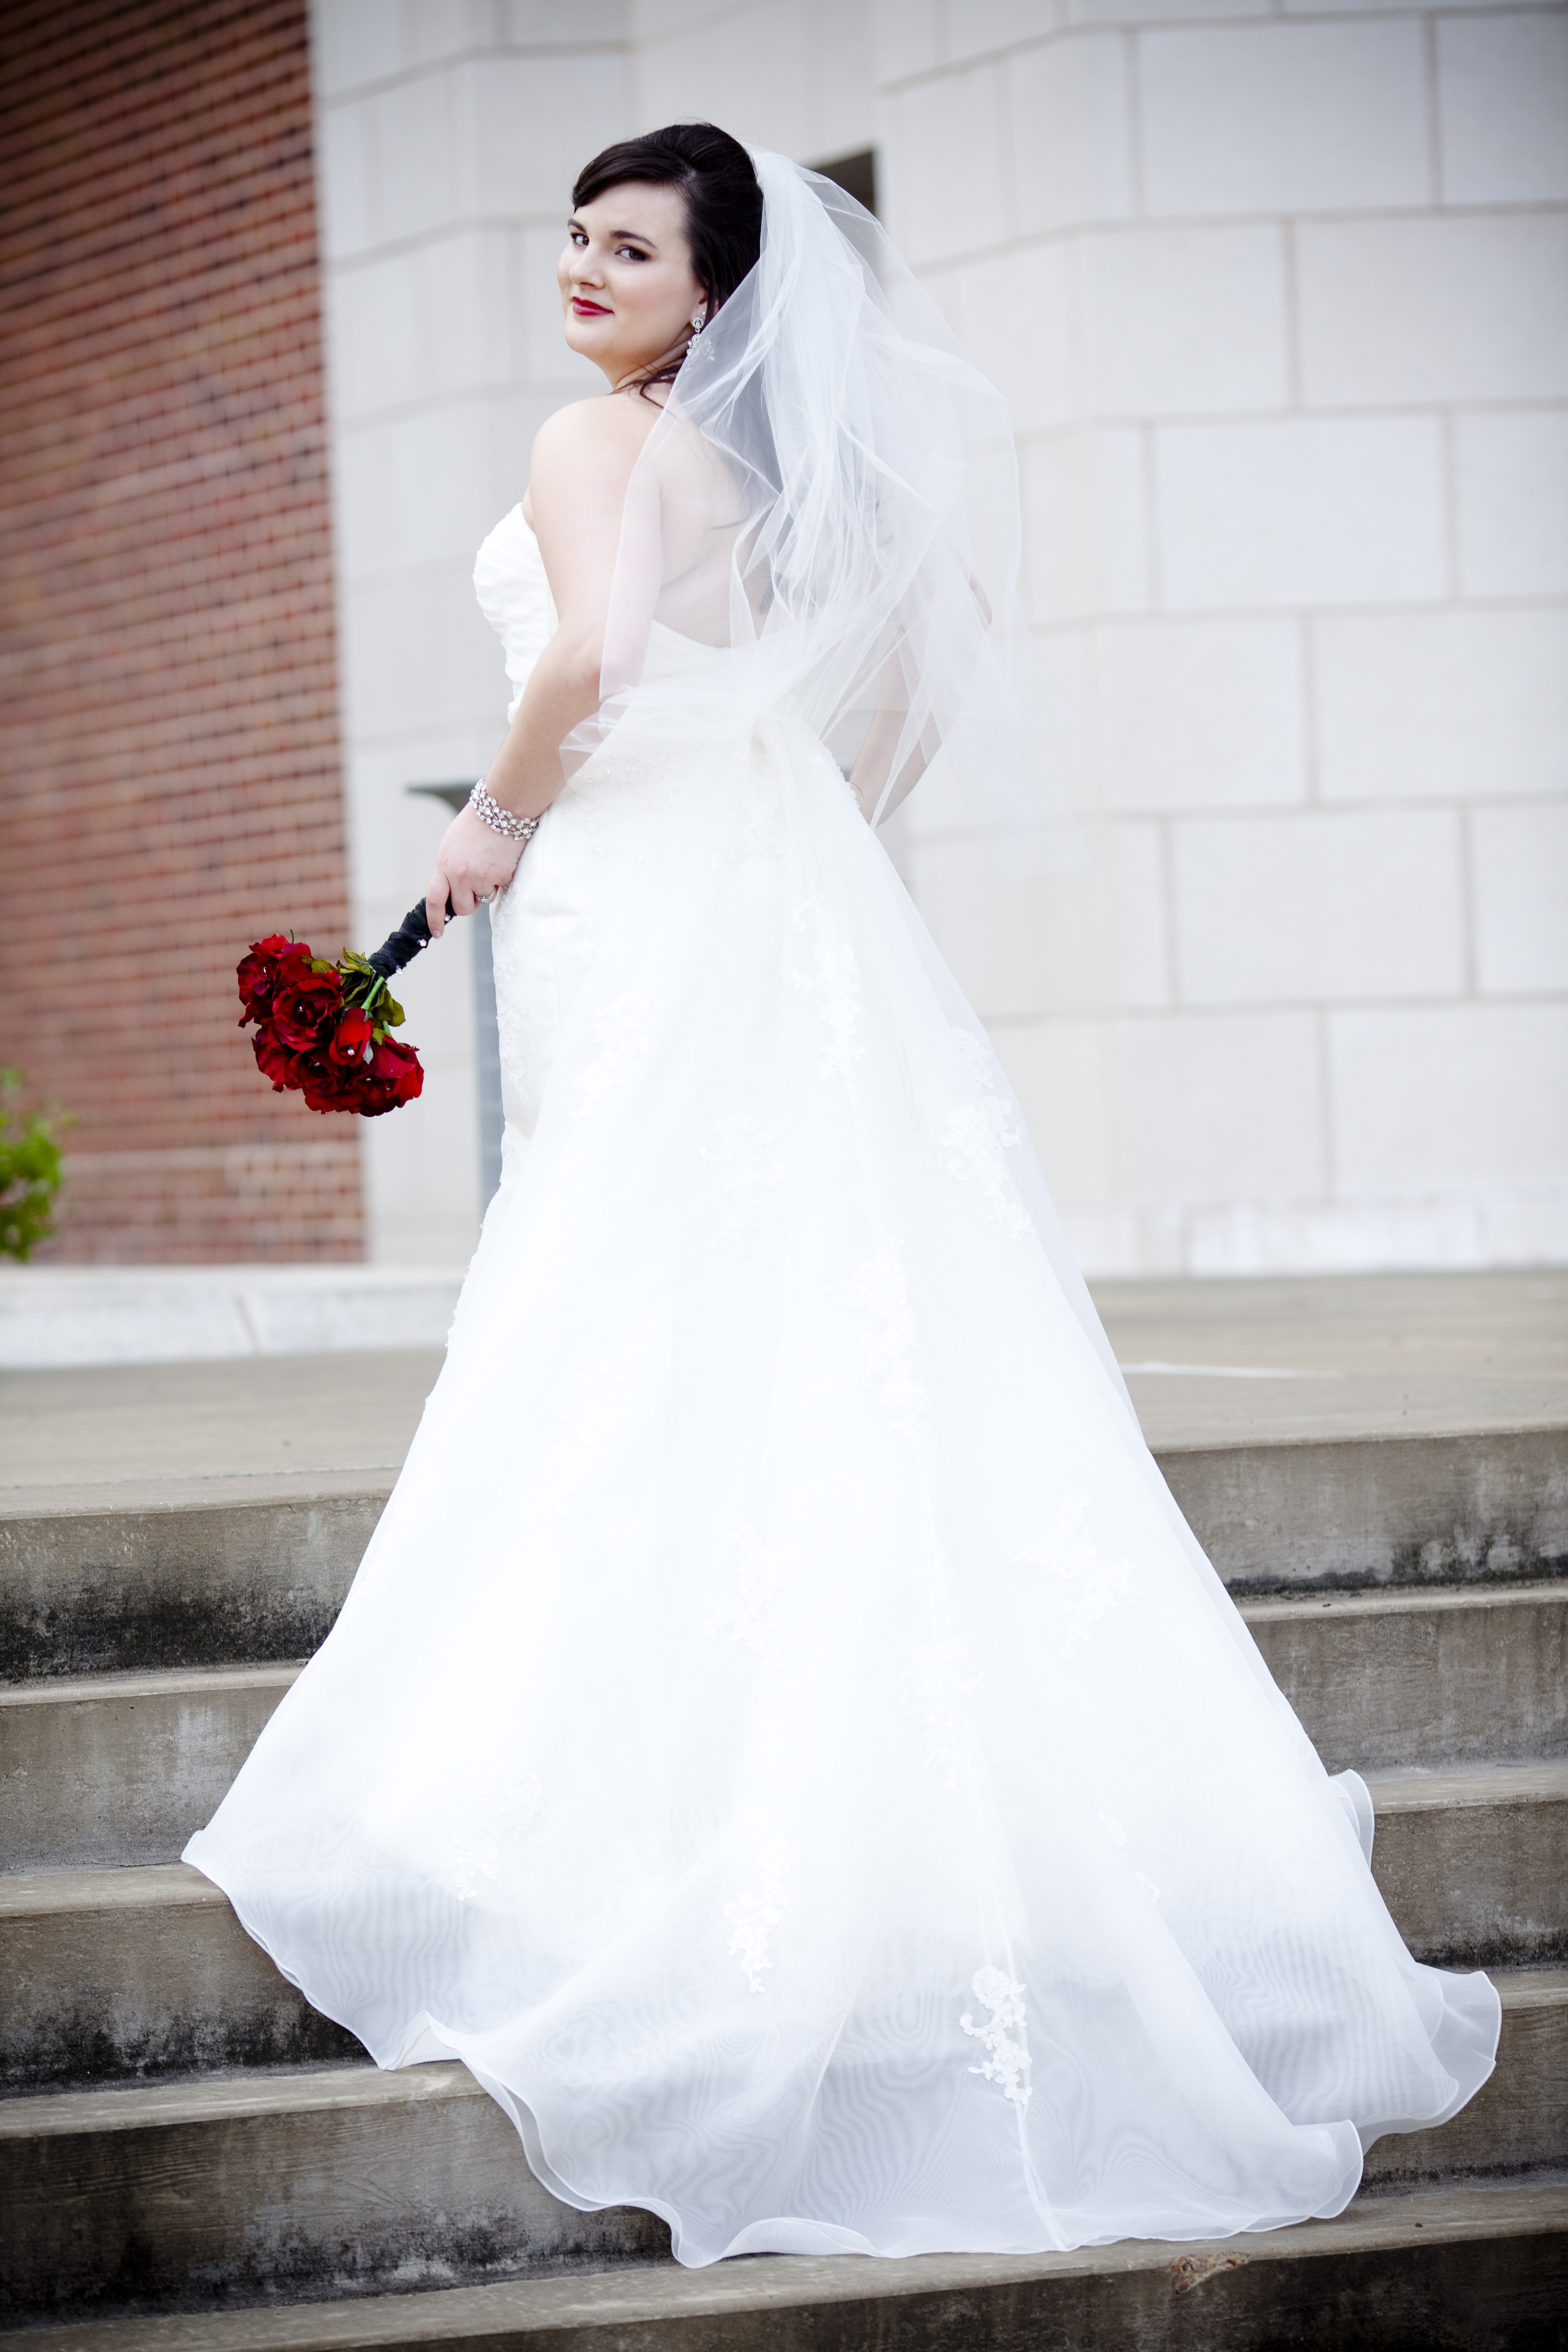 Wedding Dresses, Fashion, dress, Bridal portrait, Steps